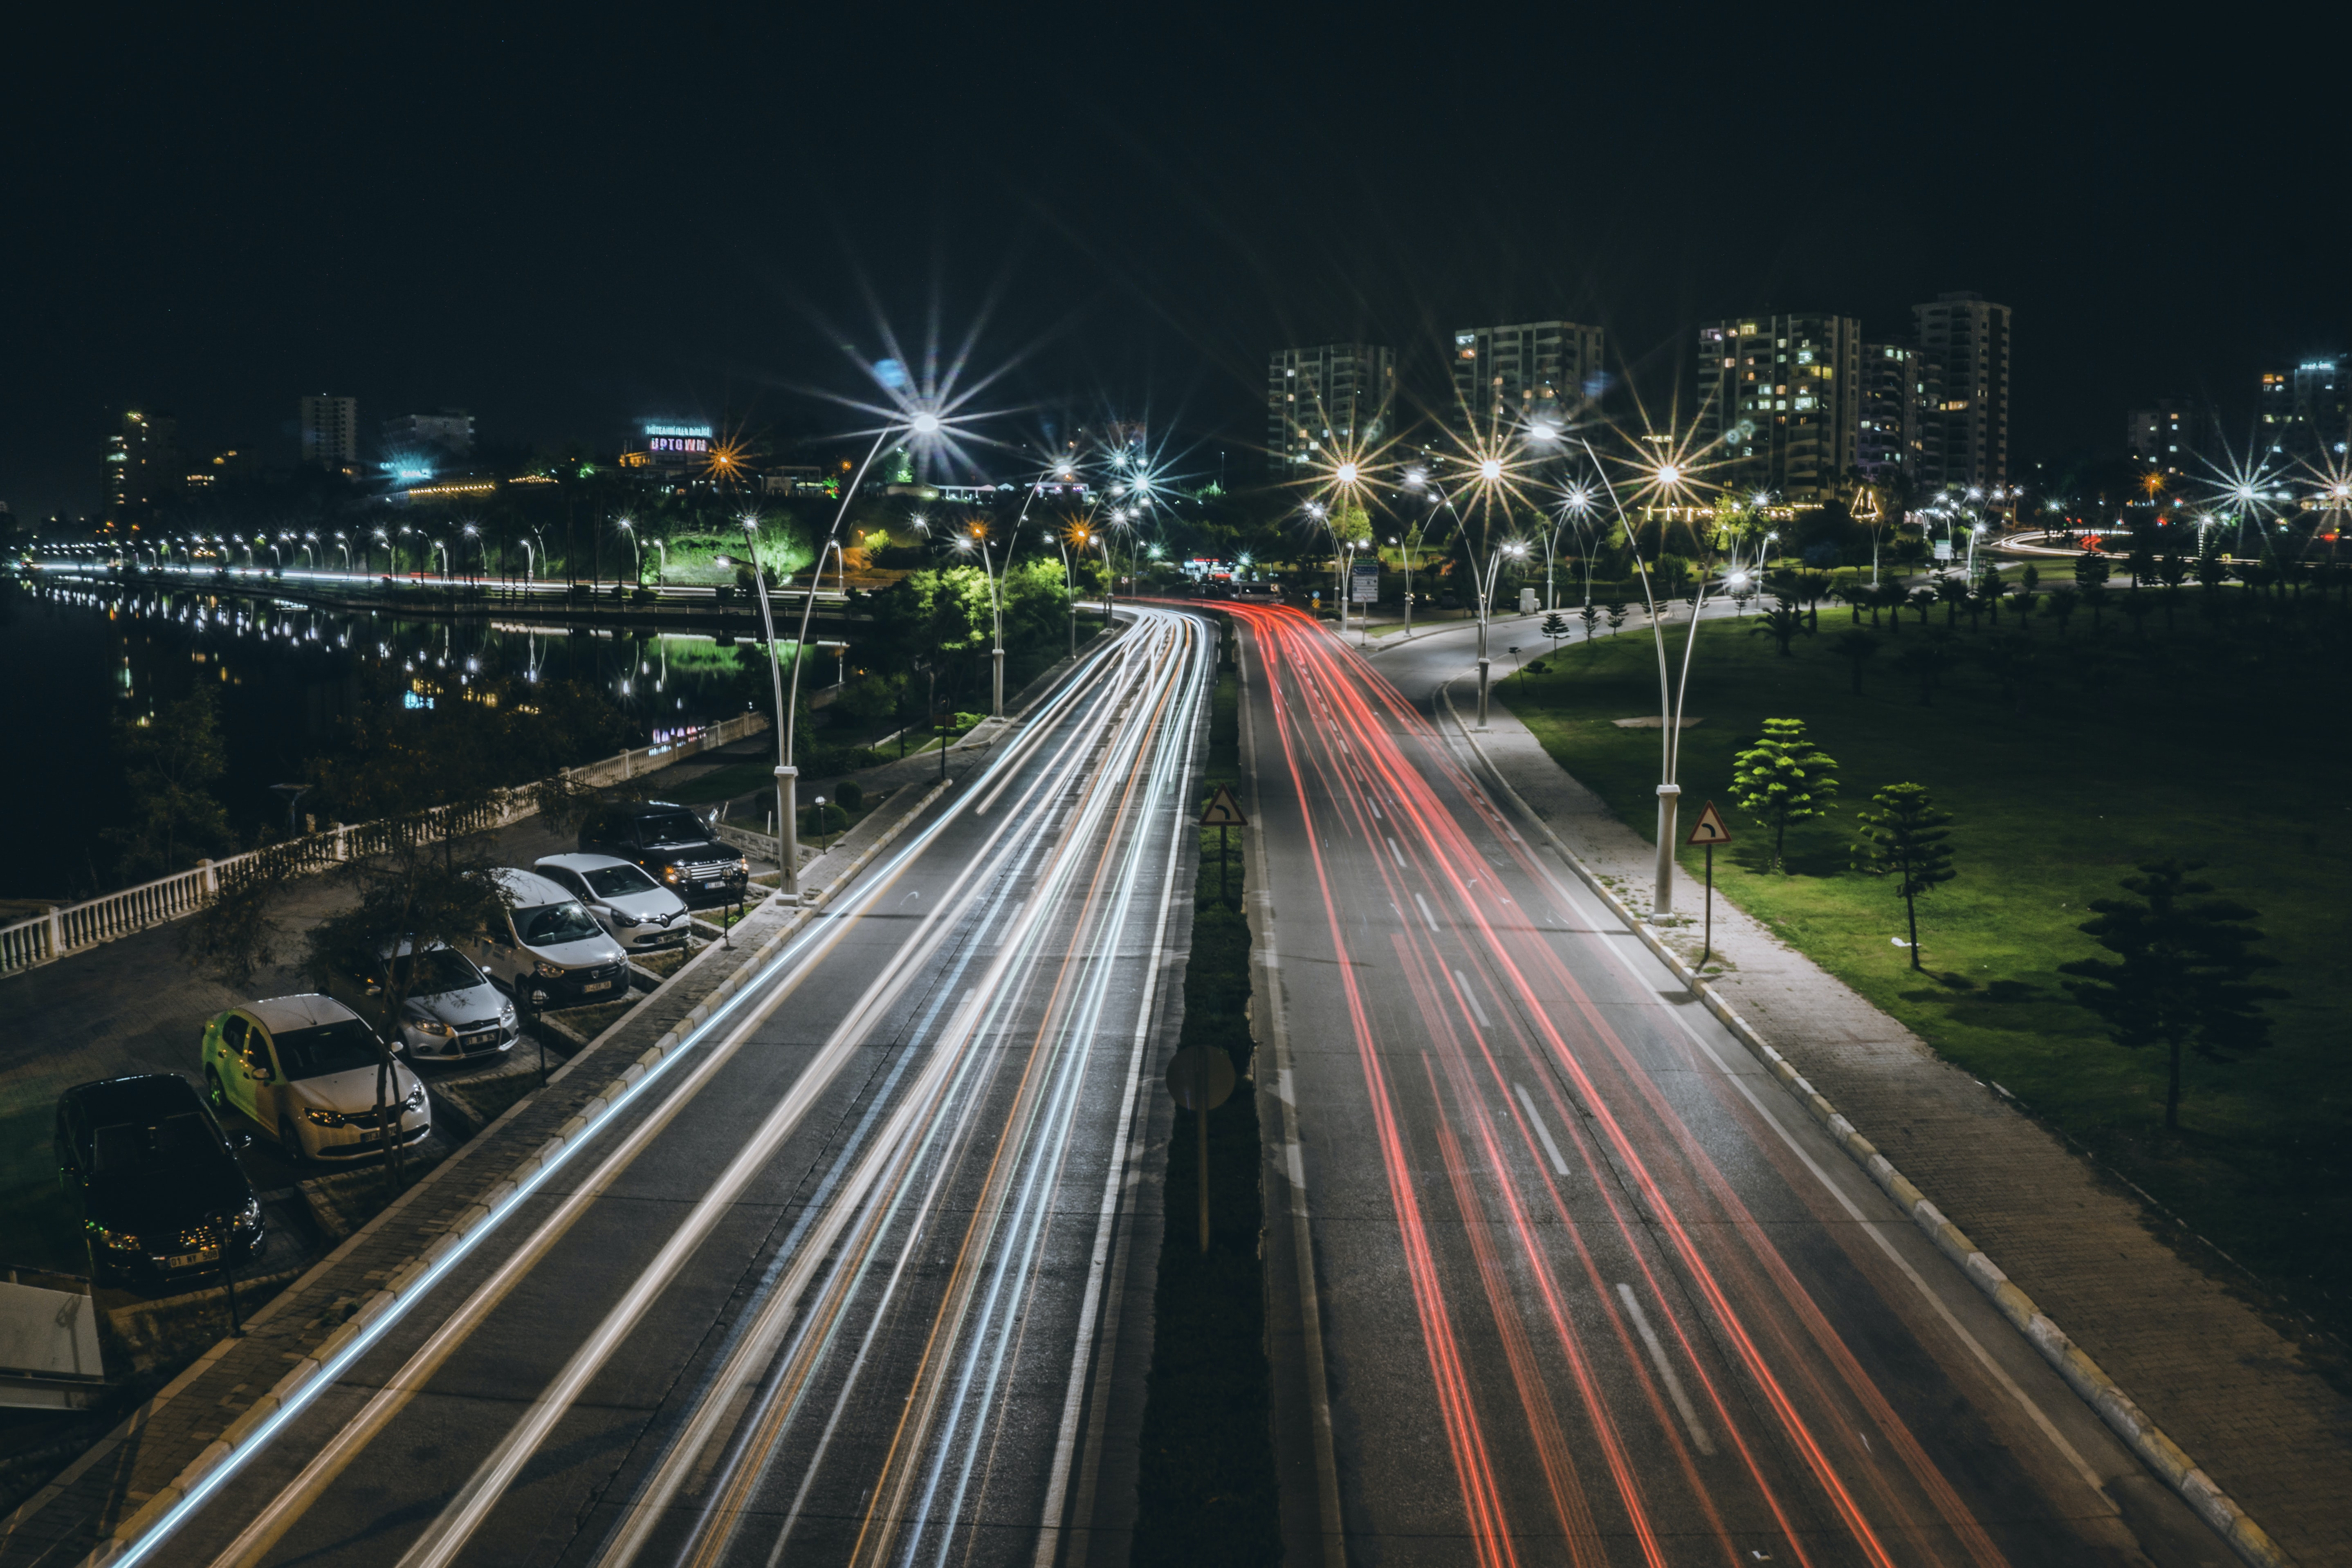 timelapse photography of road during night time